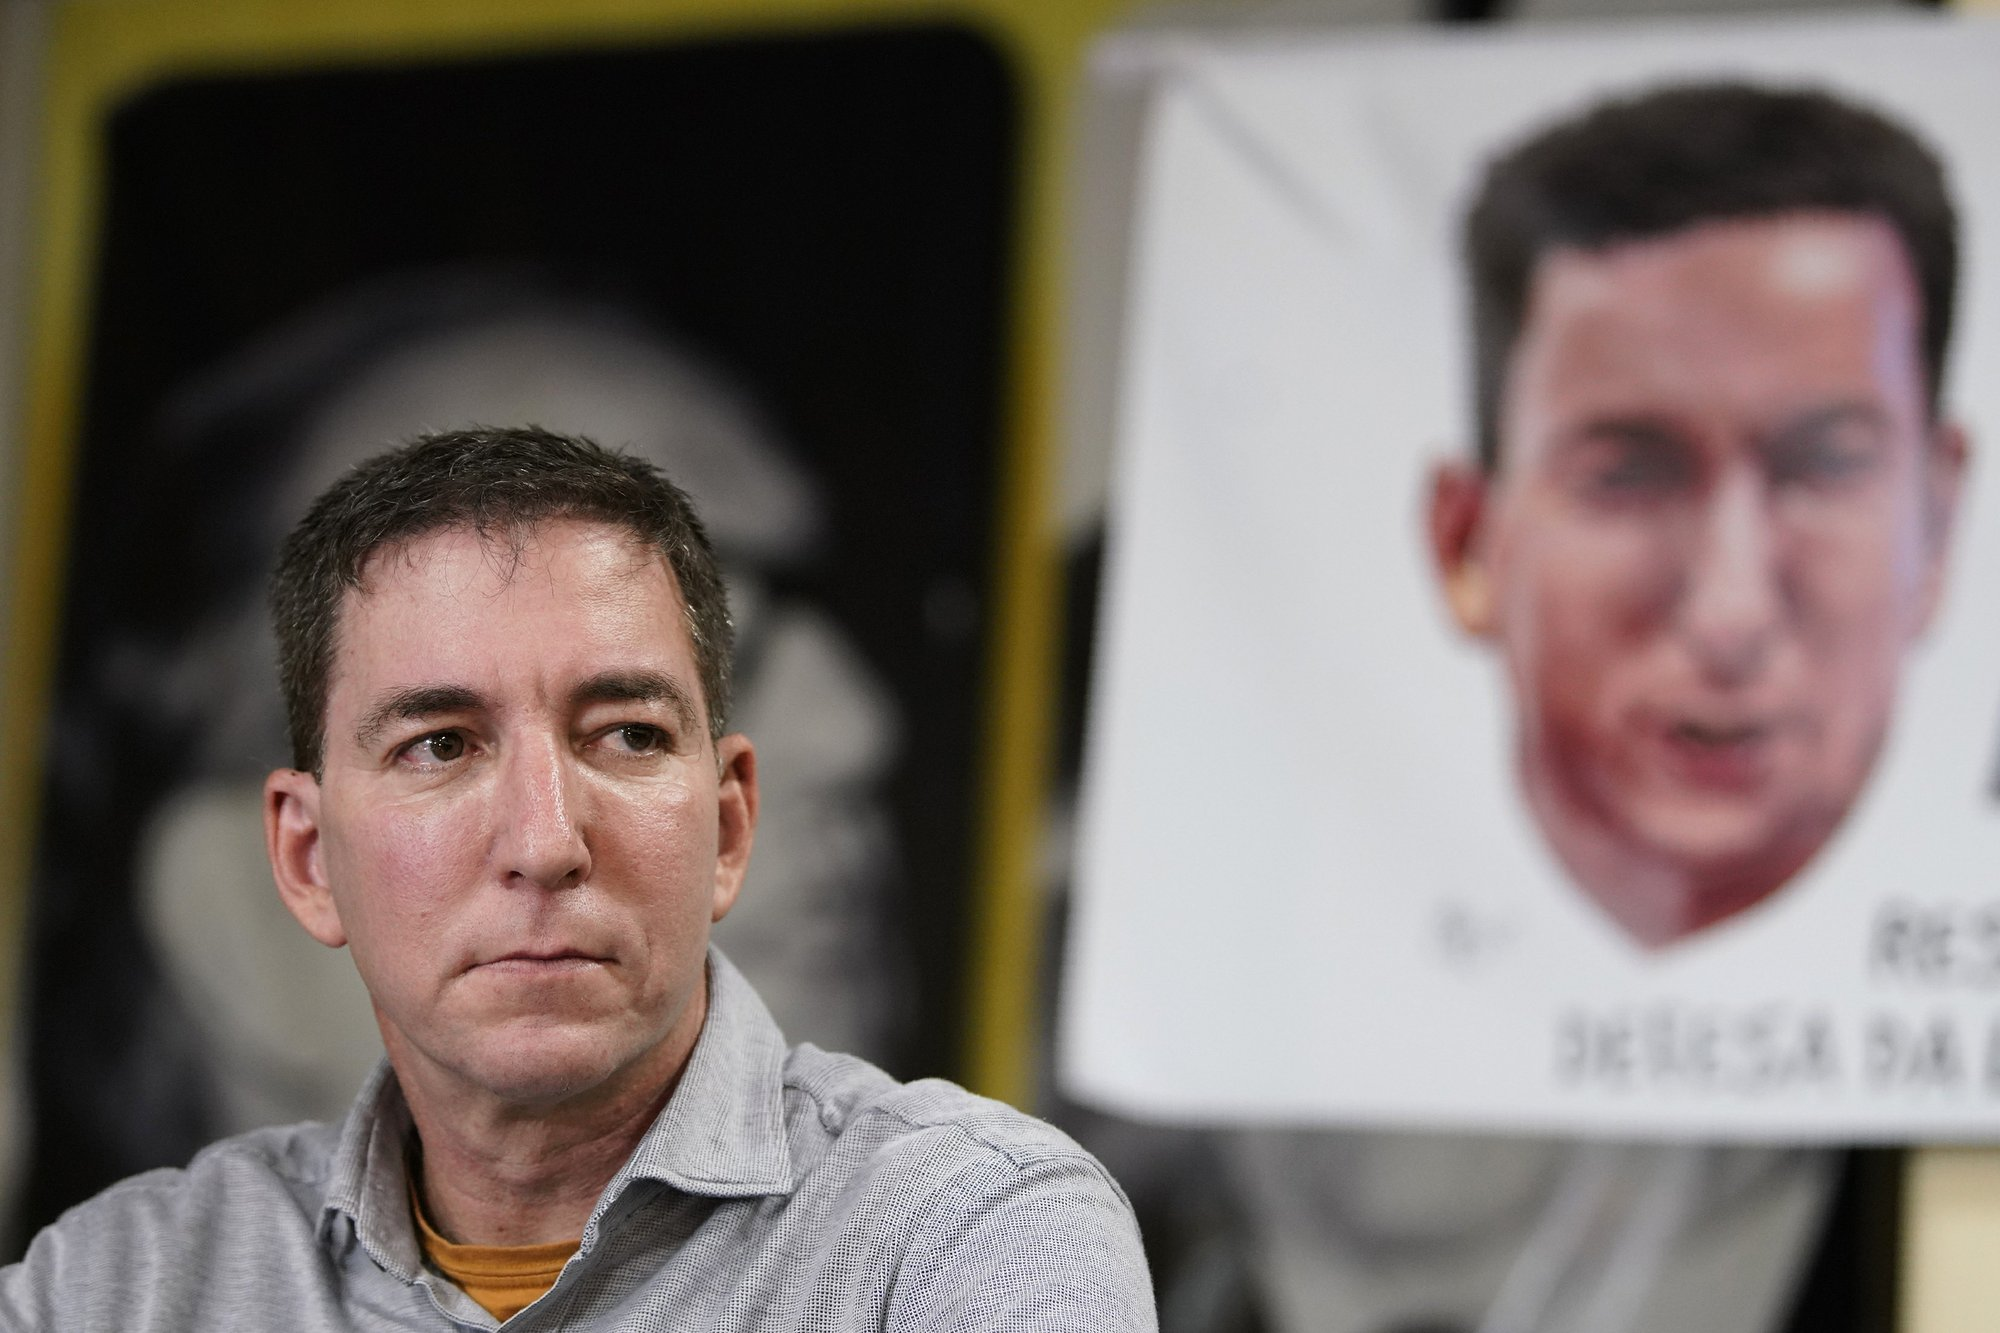 Brazilians show support for American journalist Greenwald